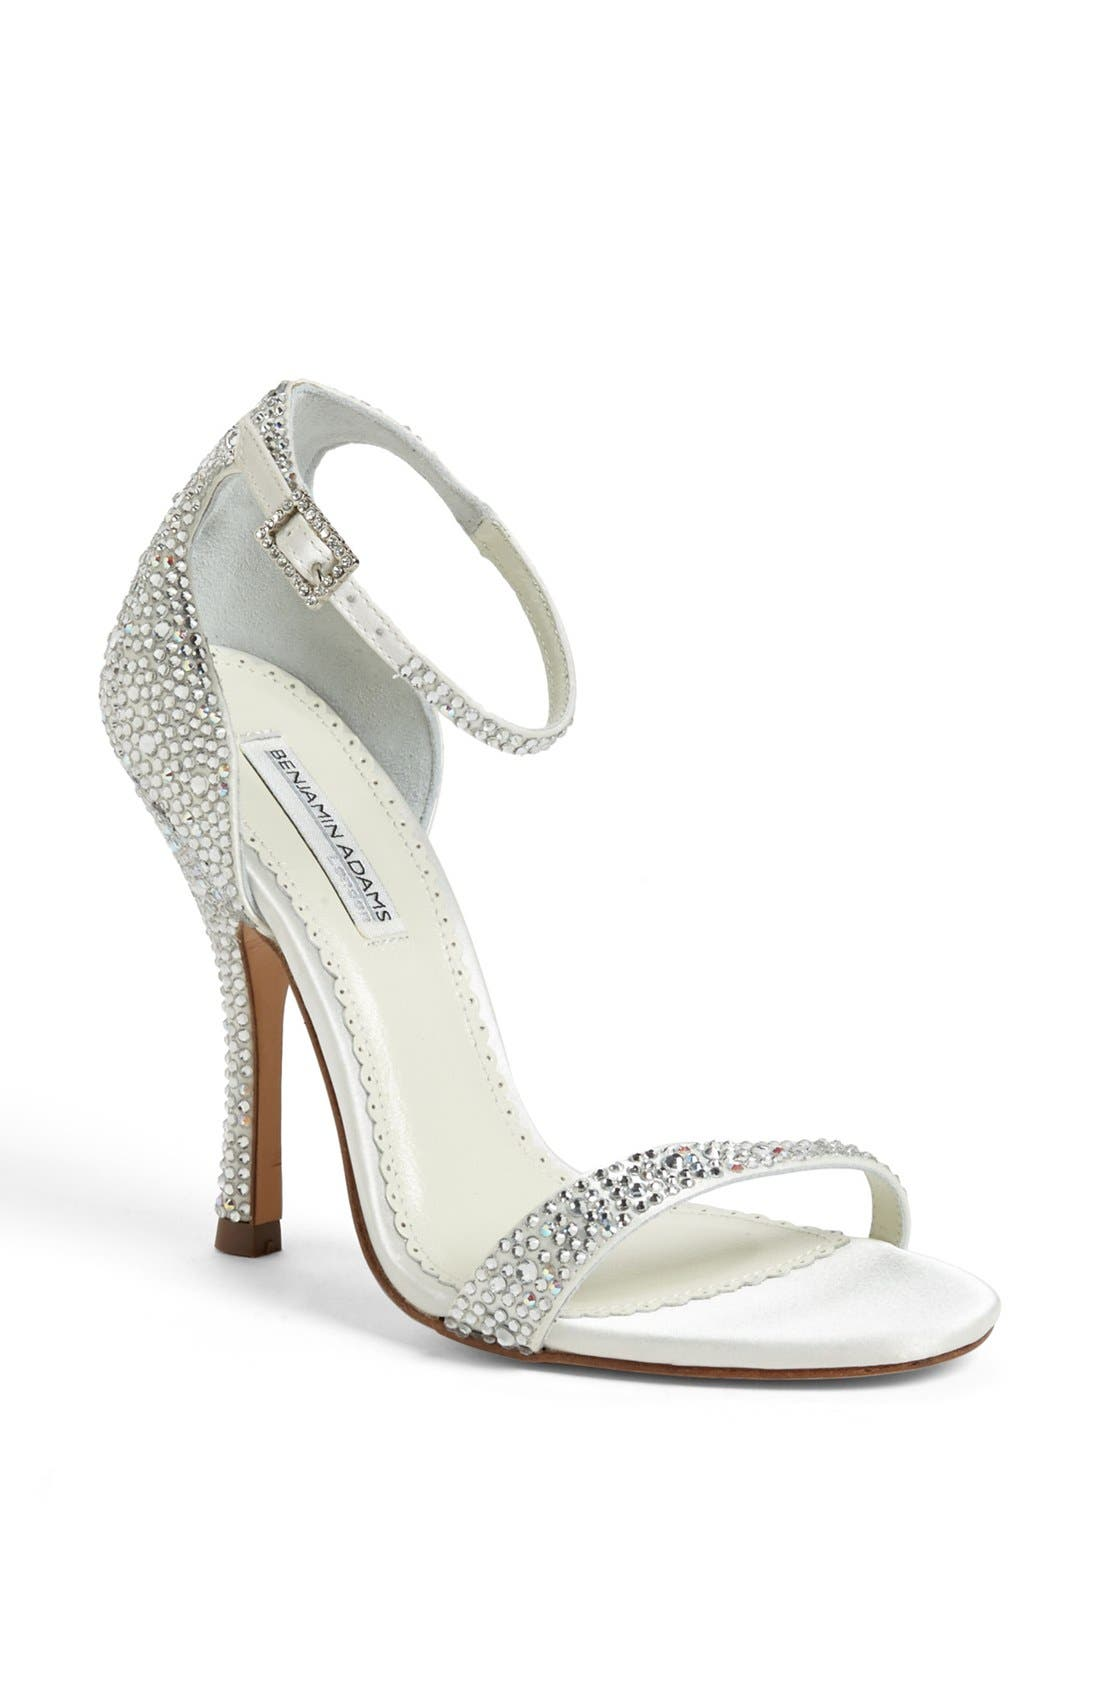 Benjamin Adams Sandal,                         Main,                         color, Ivory